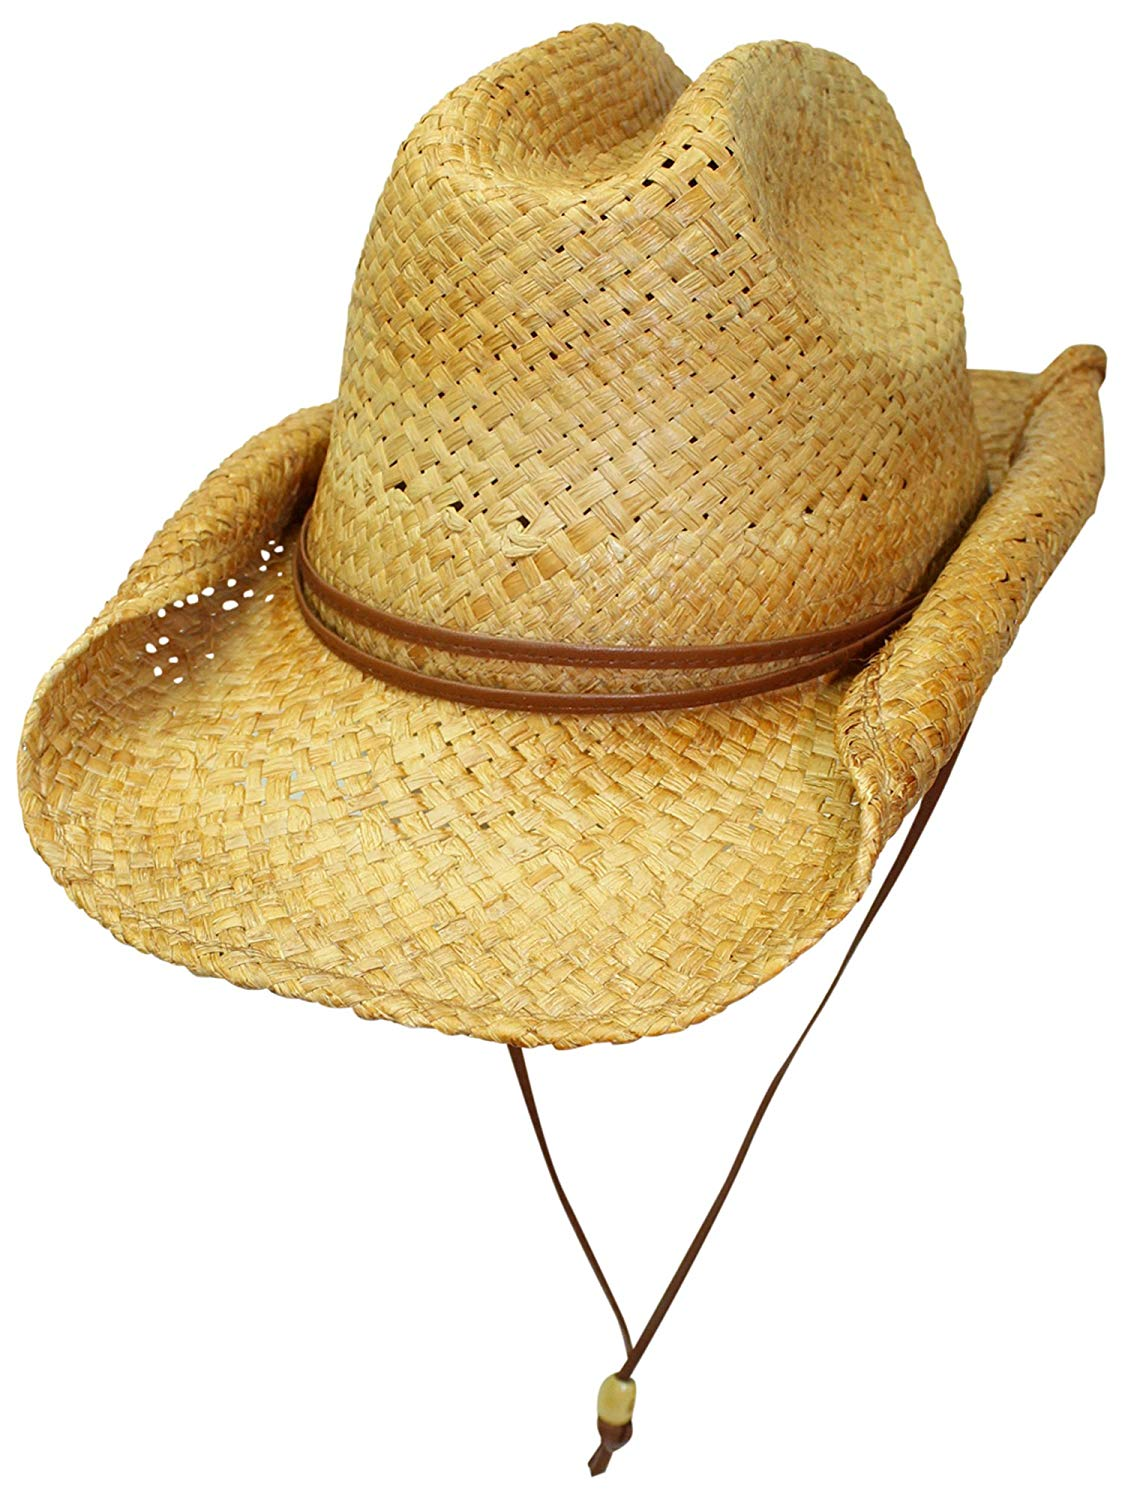 35004358da Get Quotations · Luxury Divas Bended Brim Rocker Style Distressed Straw Cowboy  Hat With Chin Cord